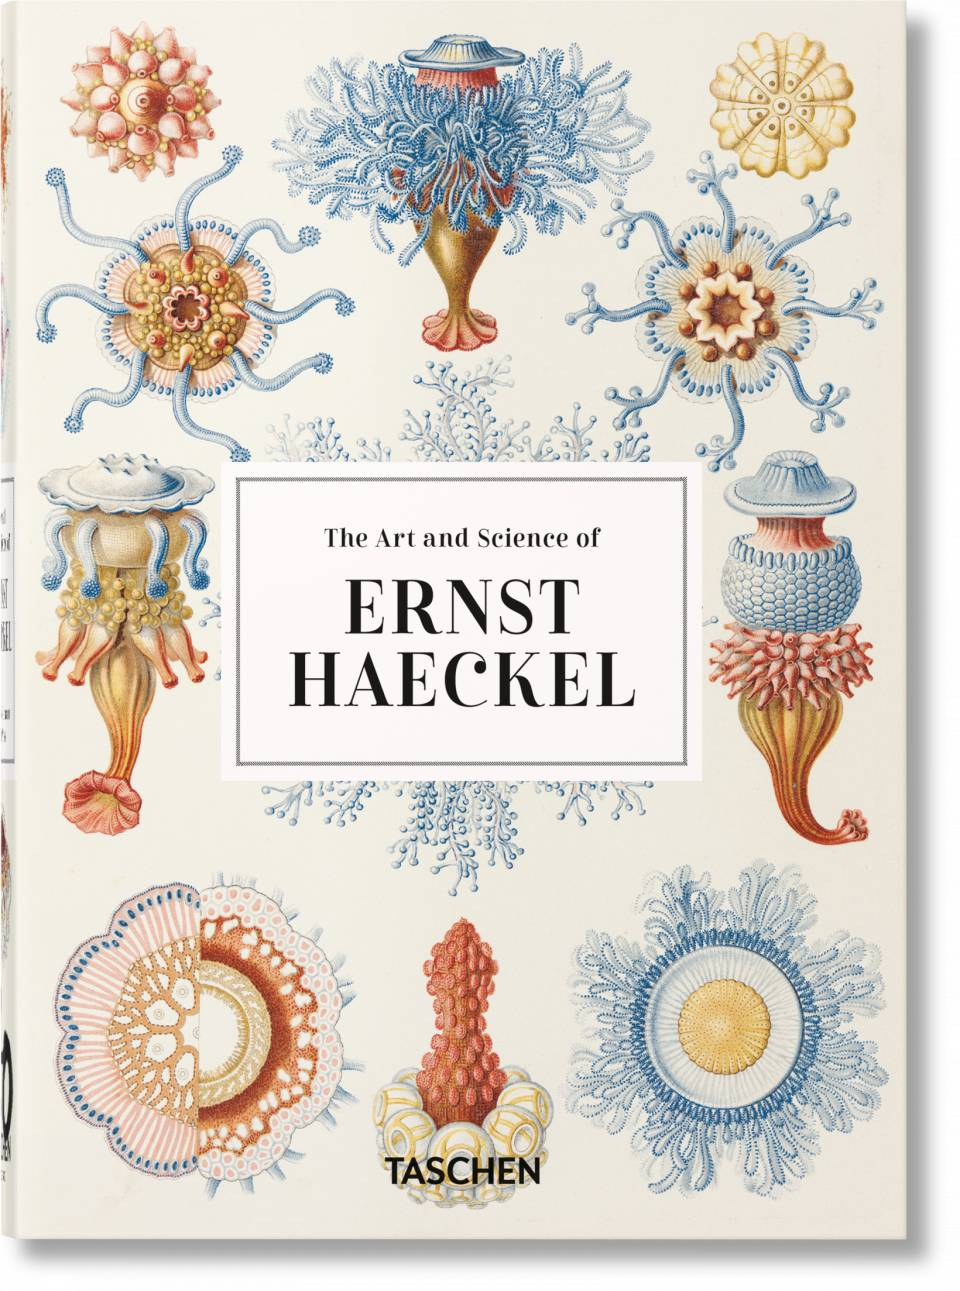 The Art and Science of Ernst Haeckel. 40th Ed. - image 1